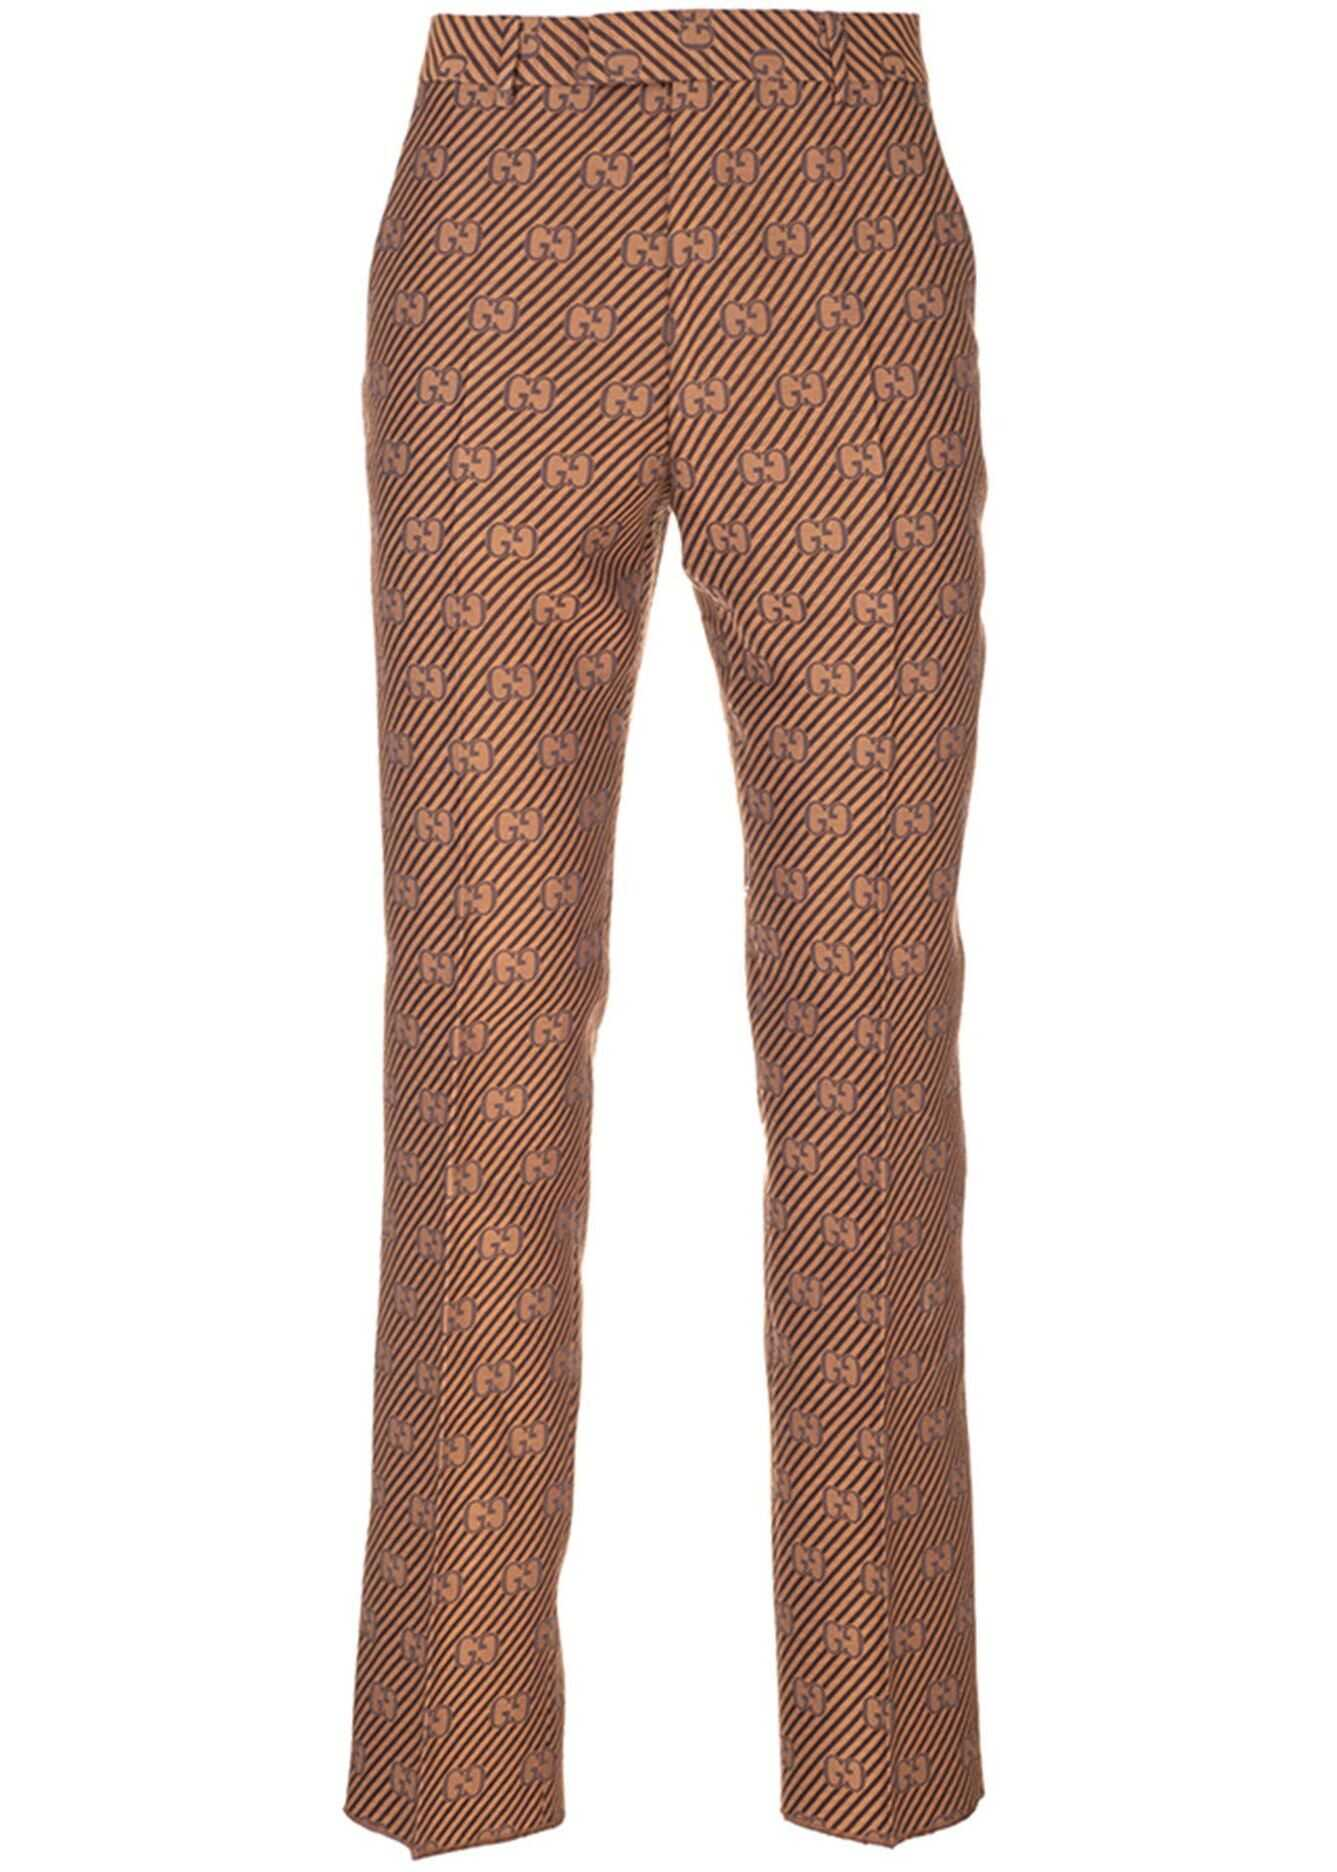 Gucci Gg Tailored Pants In Brown And Beige Brown imagine